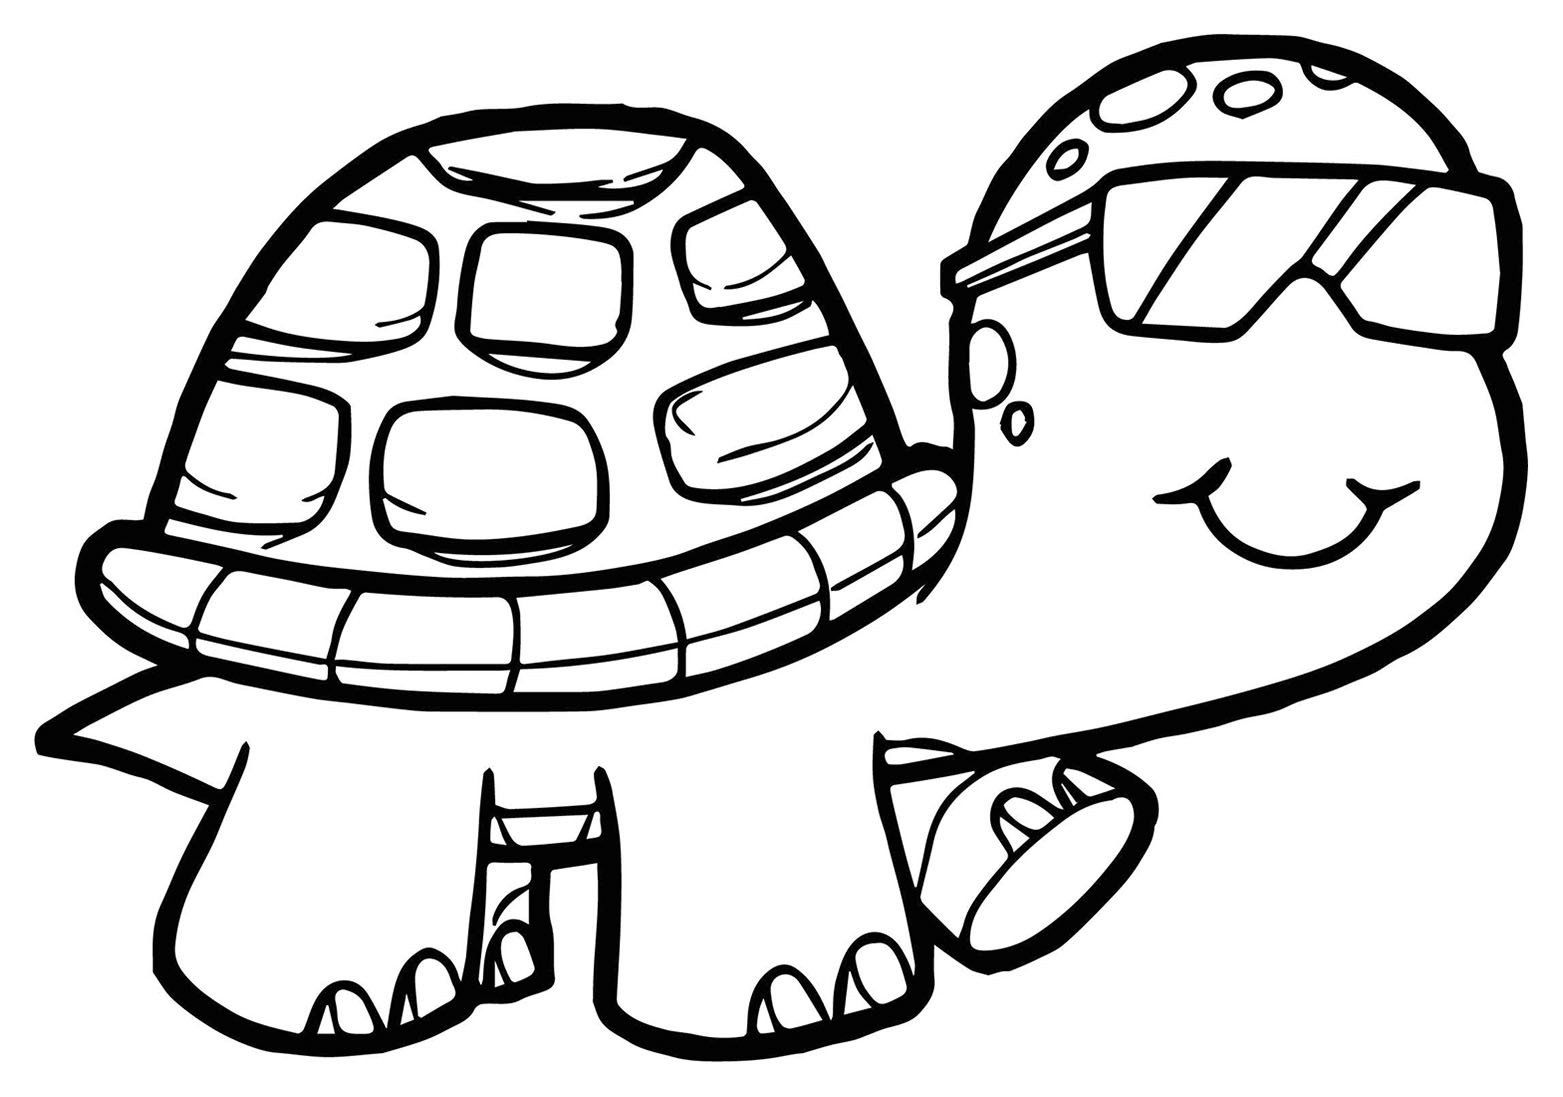 Kids Coloring Pages Printable Turtles Free To Color For Kids Turtles Kids Coloring Page Turtle Coloring Pages Cool Coloring Pages Kids Printable Coloring Pages